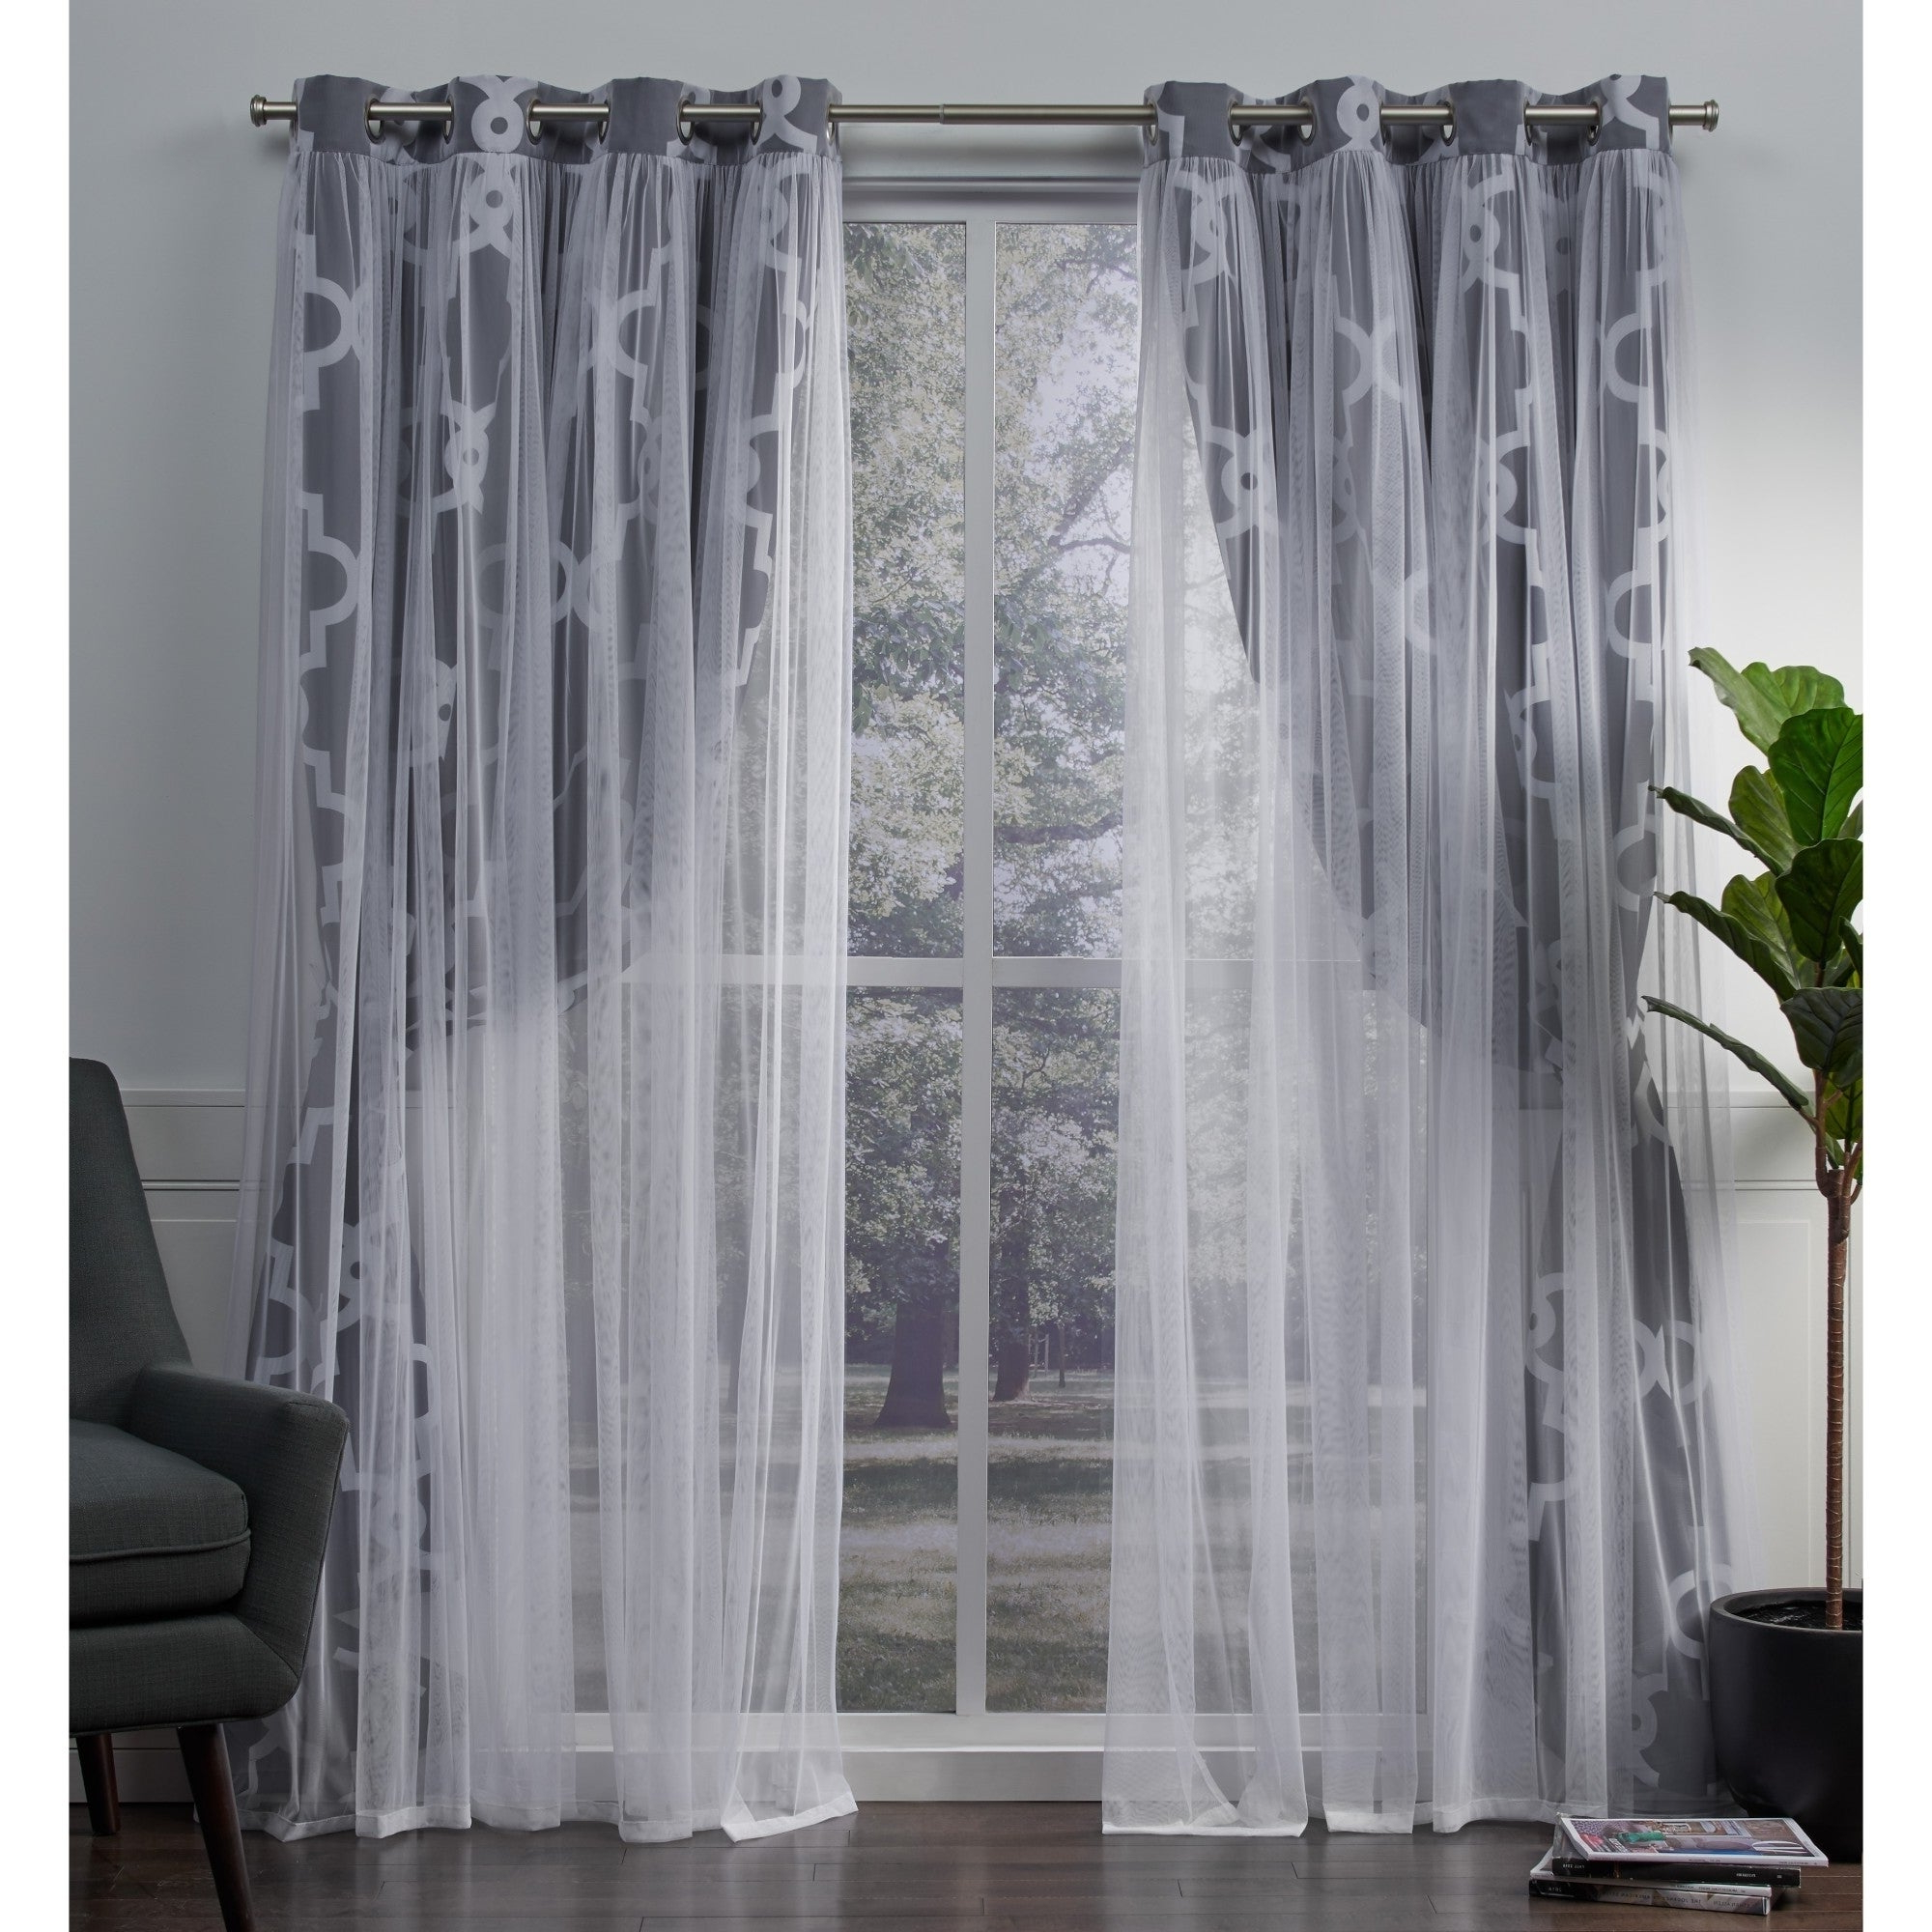 Most Current Woven Blackout Curtain Panel Pairs With Grommet Top Pertaining To Details About Ati Home Alegra Thermal Woven Blackout Grommet Top Curtain (View 11 of 20)